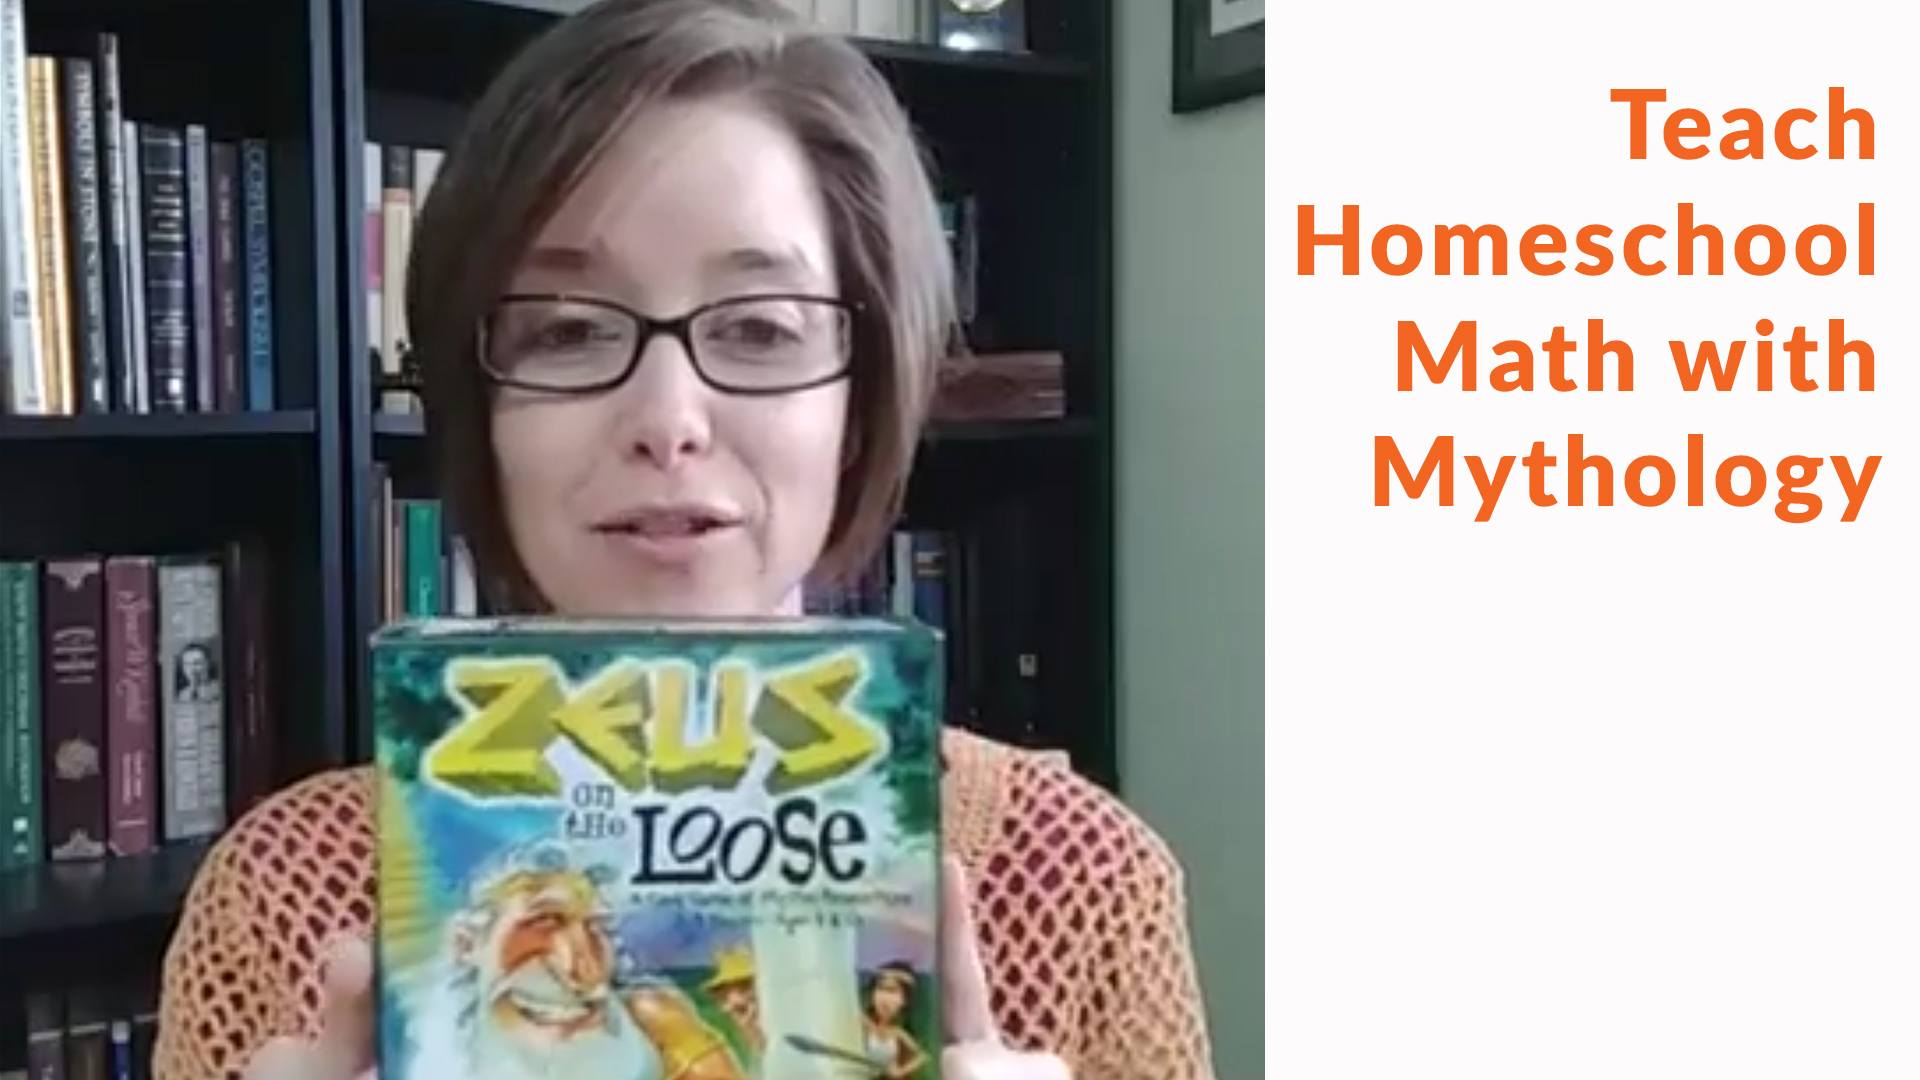 Gamewright Zeus on the Loose Review - Teach Math with Mythology